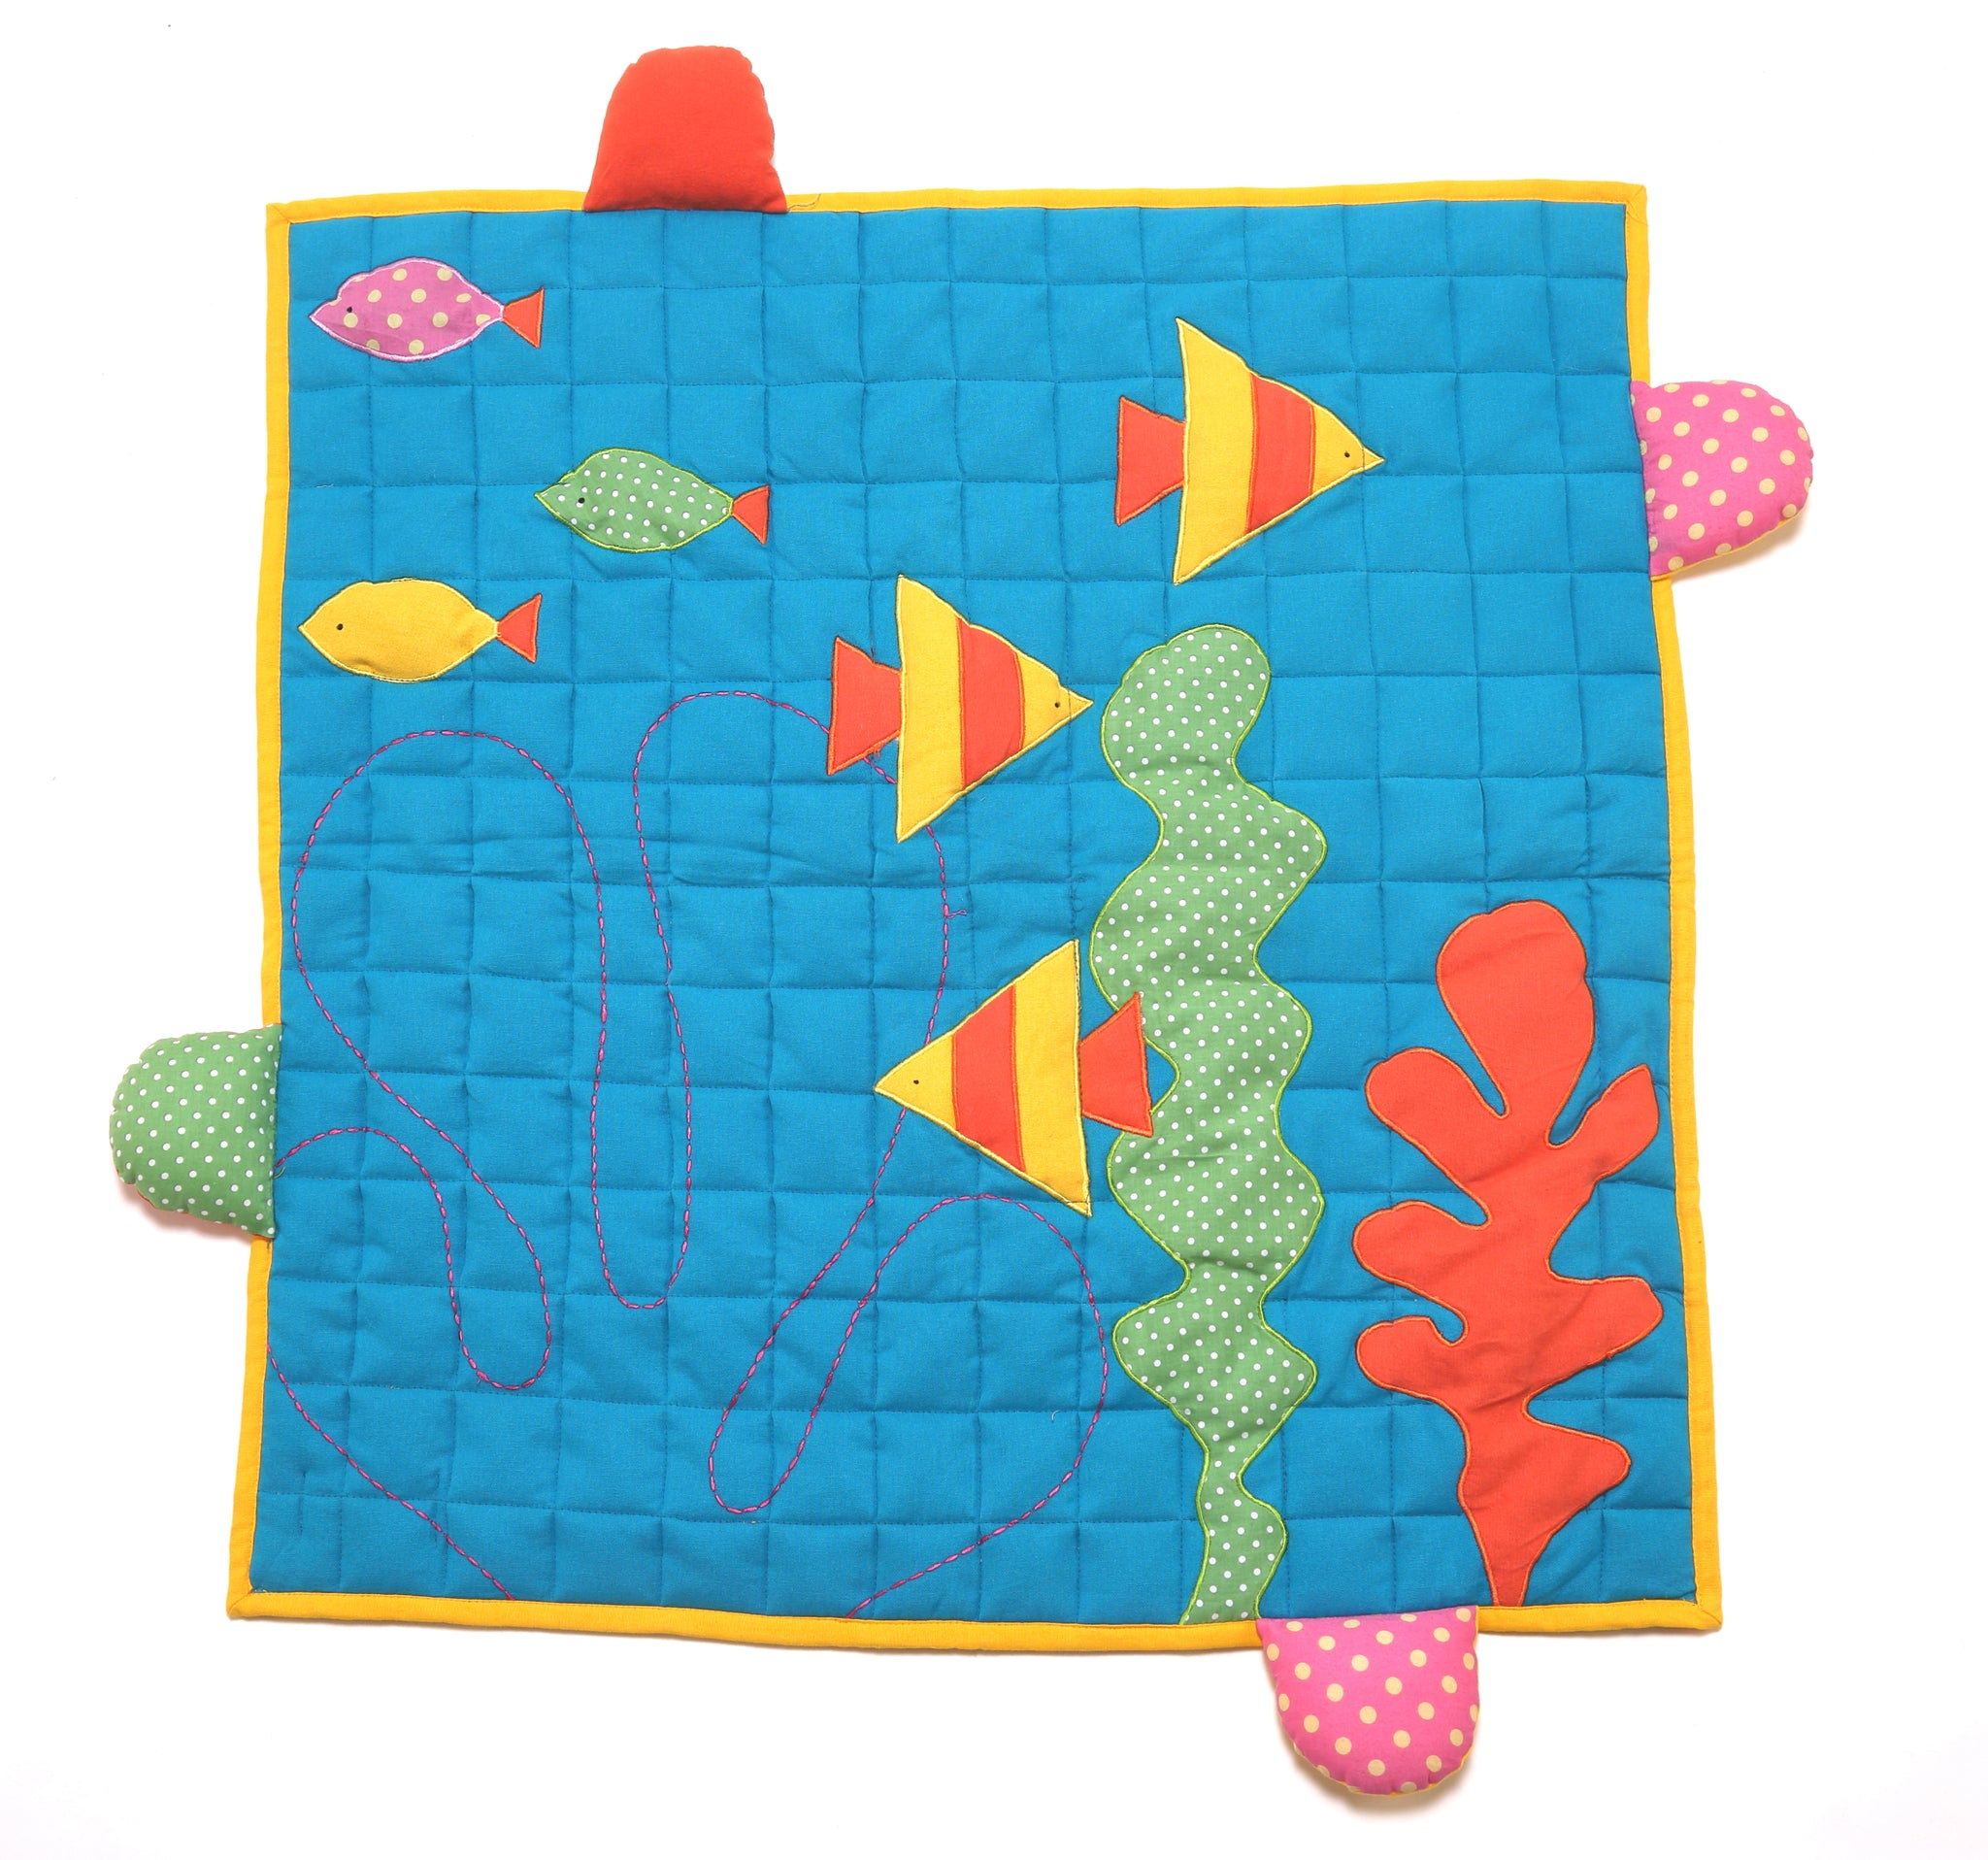 Under the sea - Play  mat